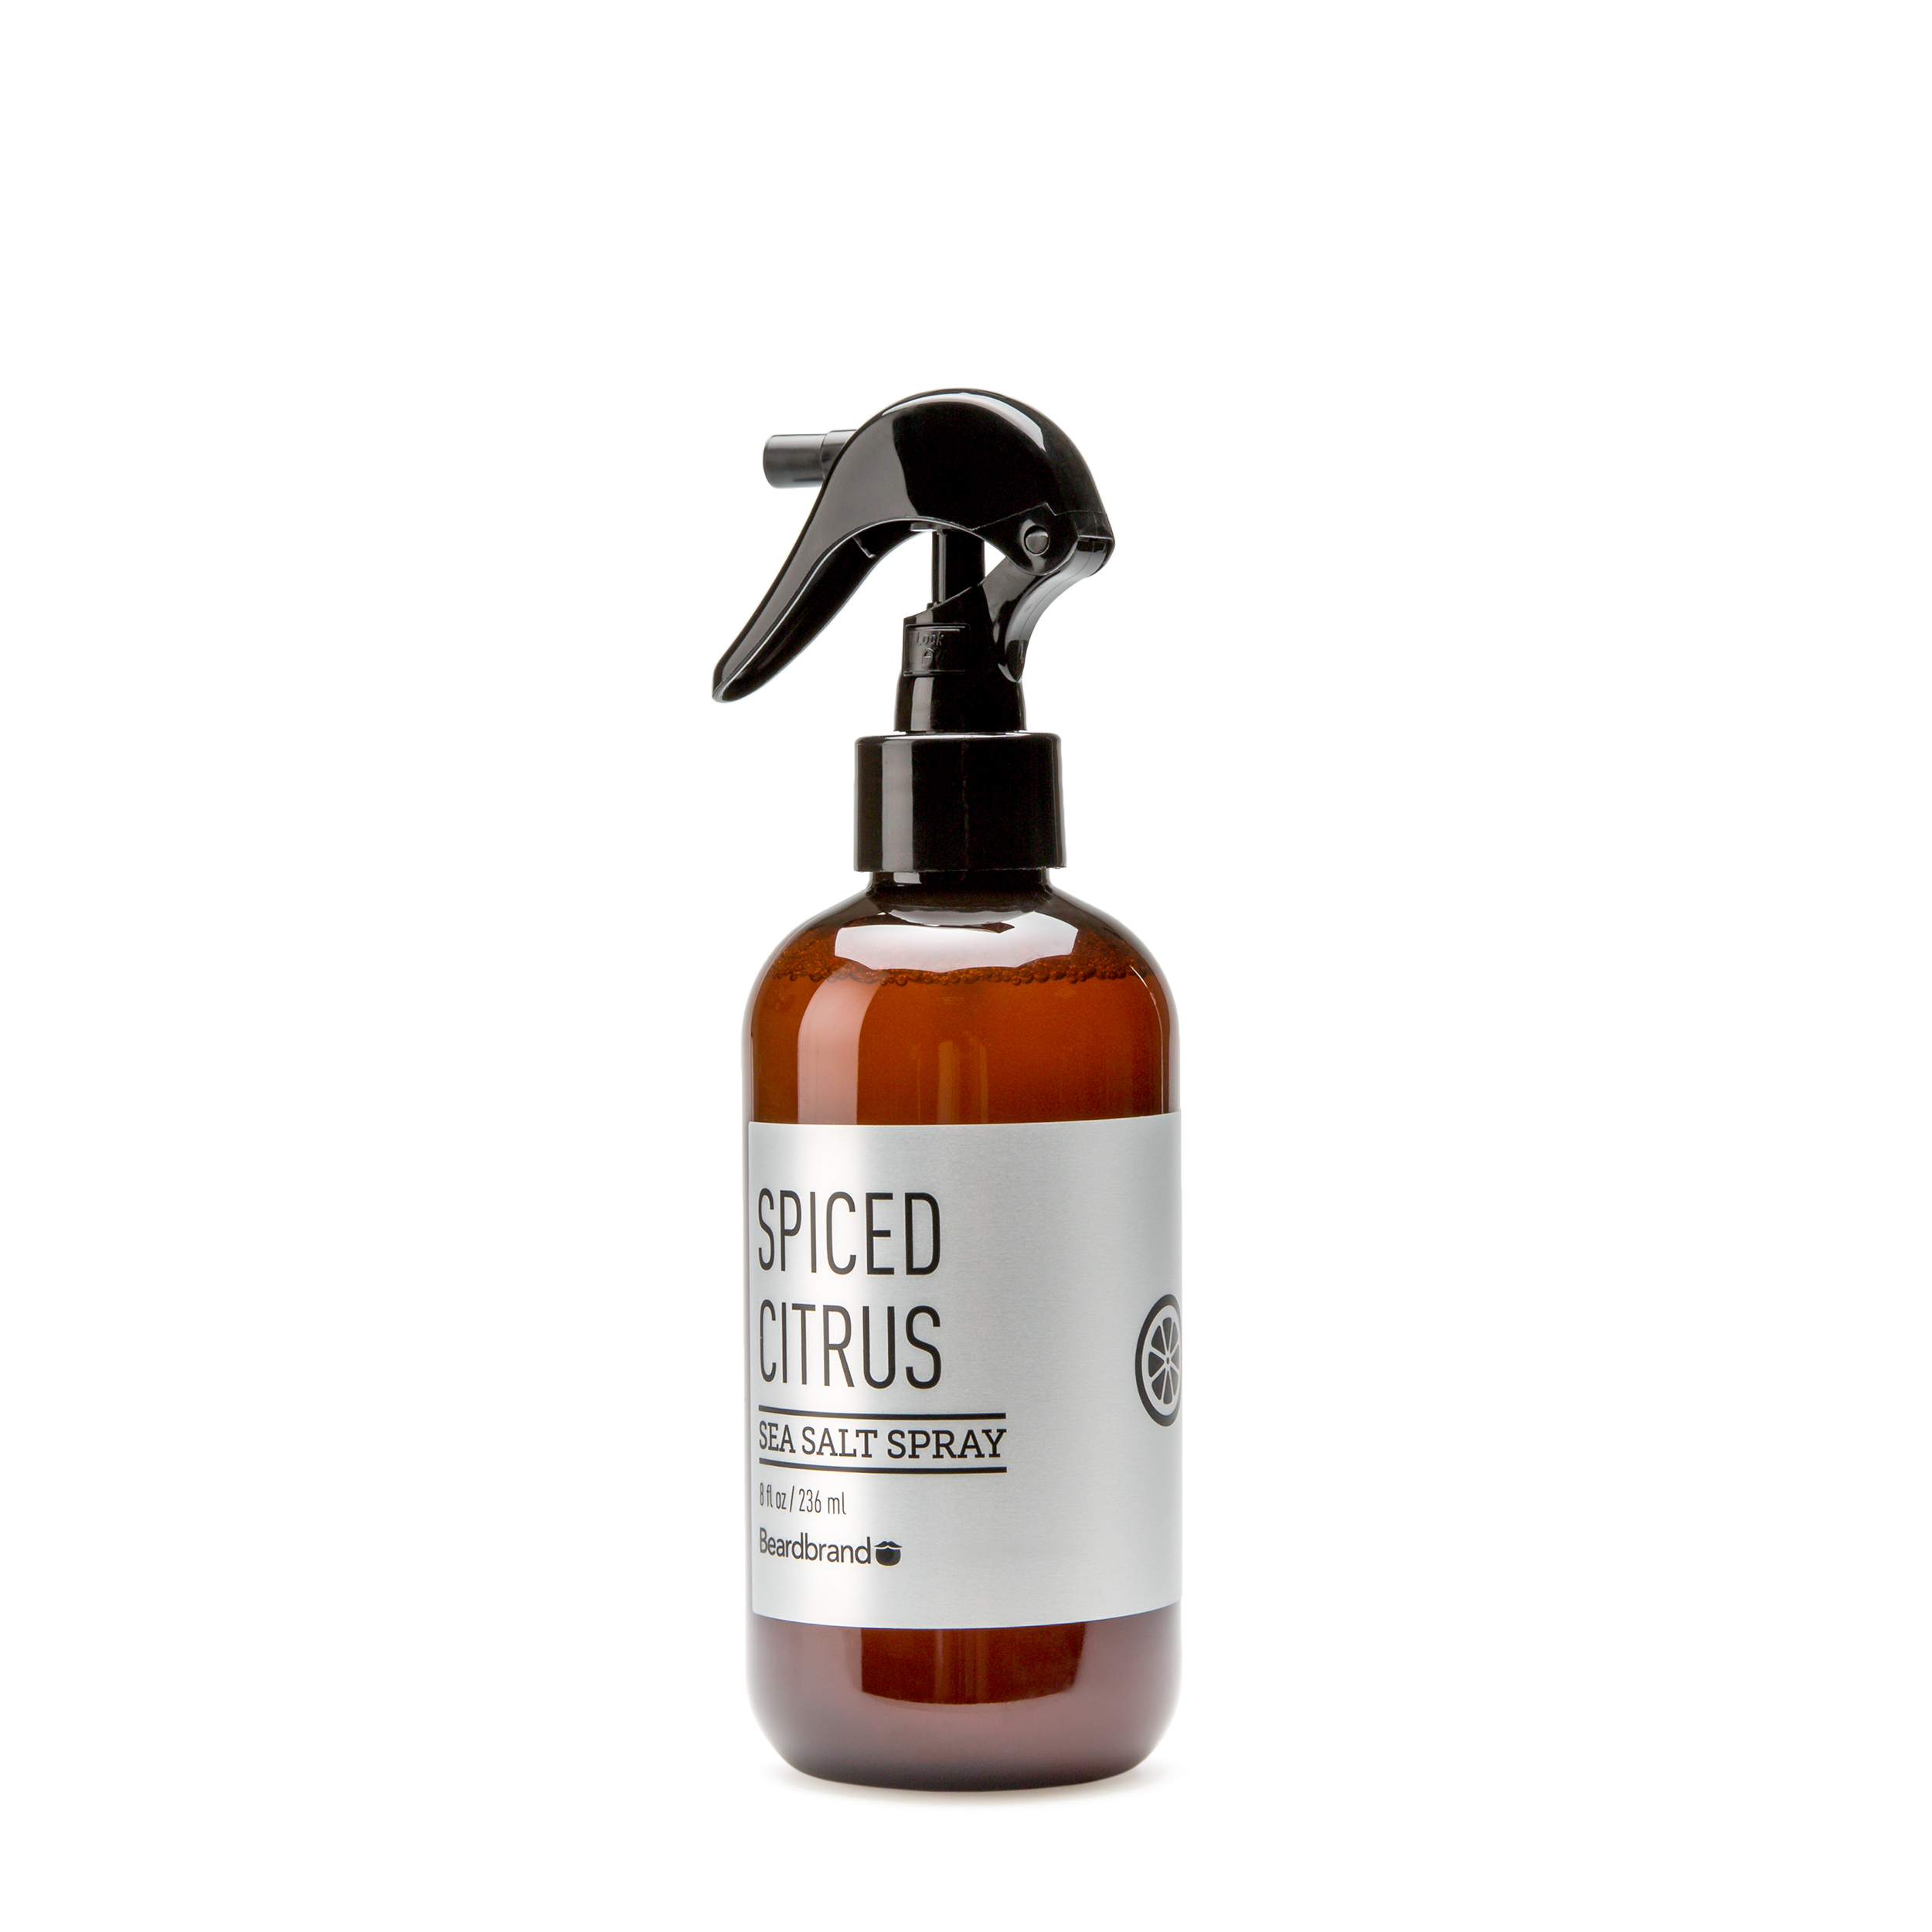 Спрей для волос Spiced Citrus Sea Salt Spray 250 мл